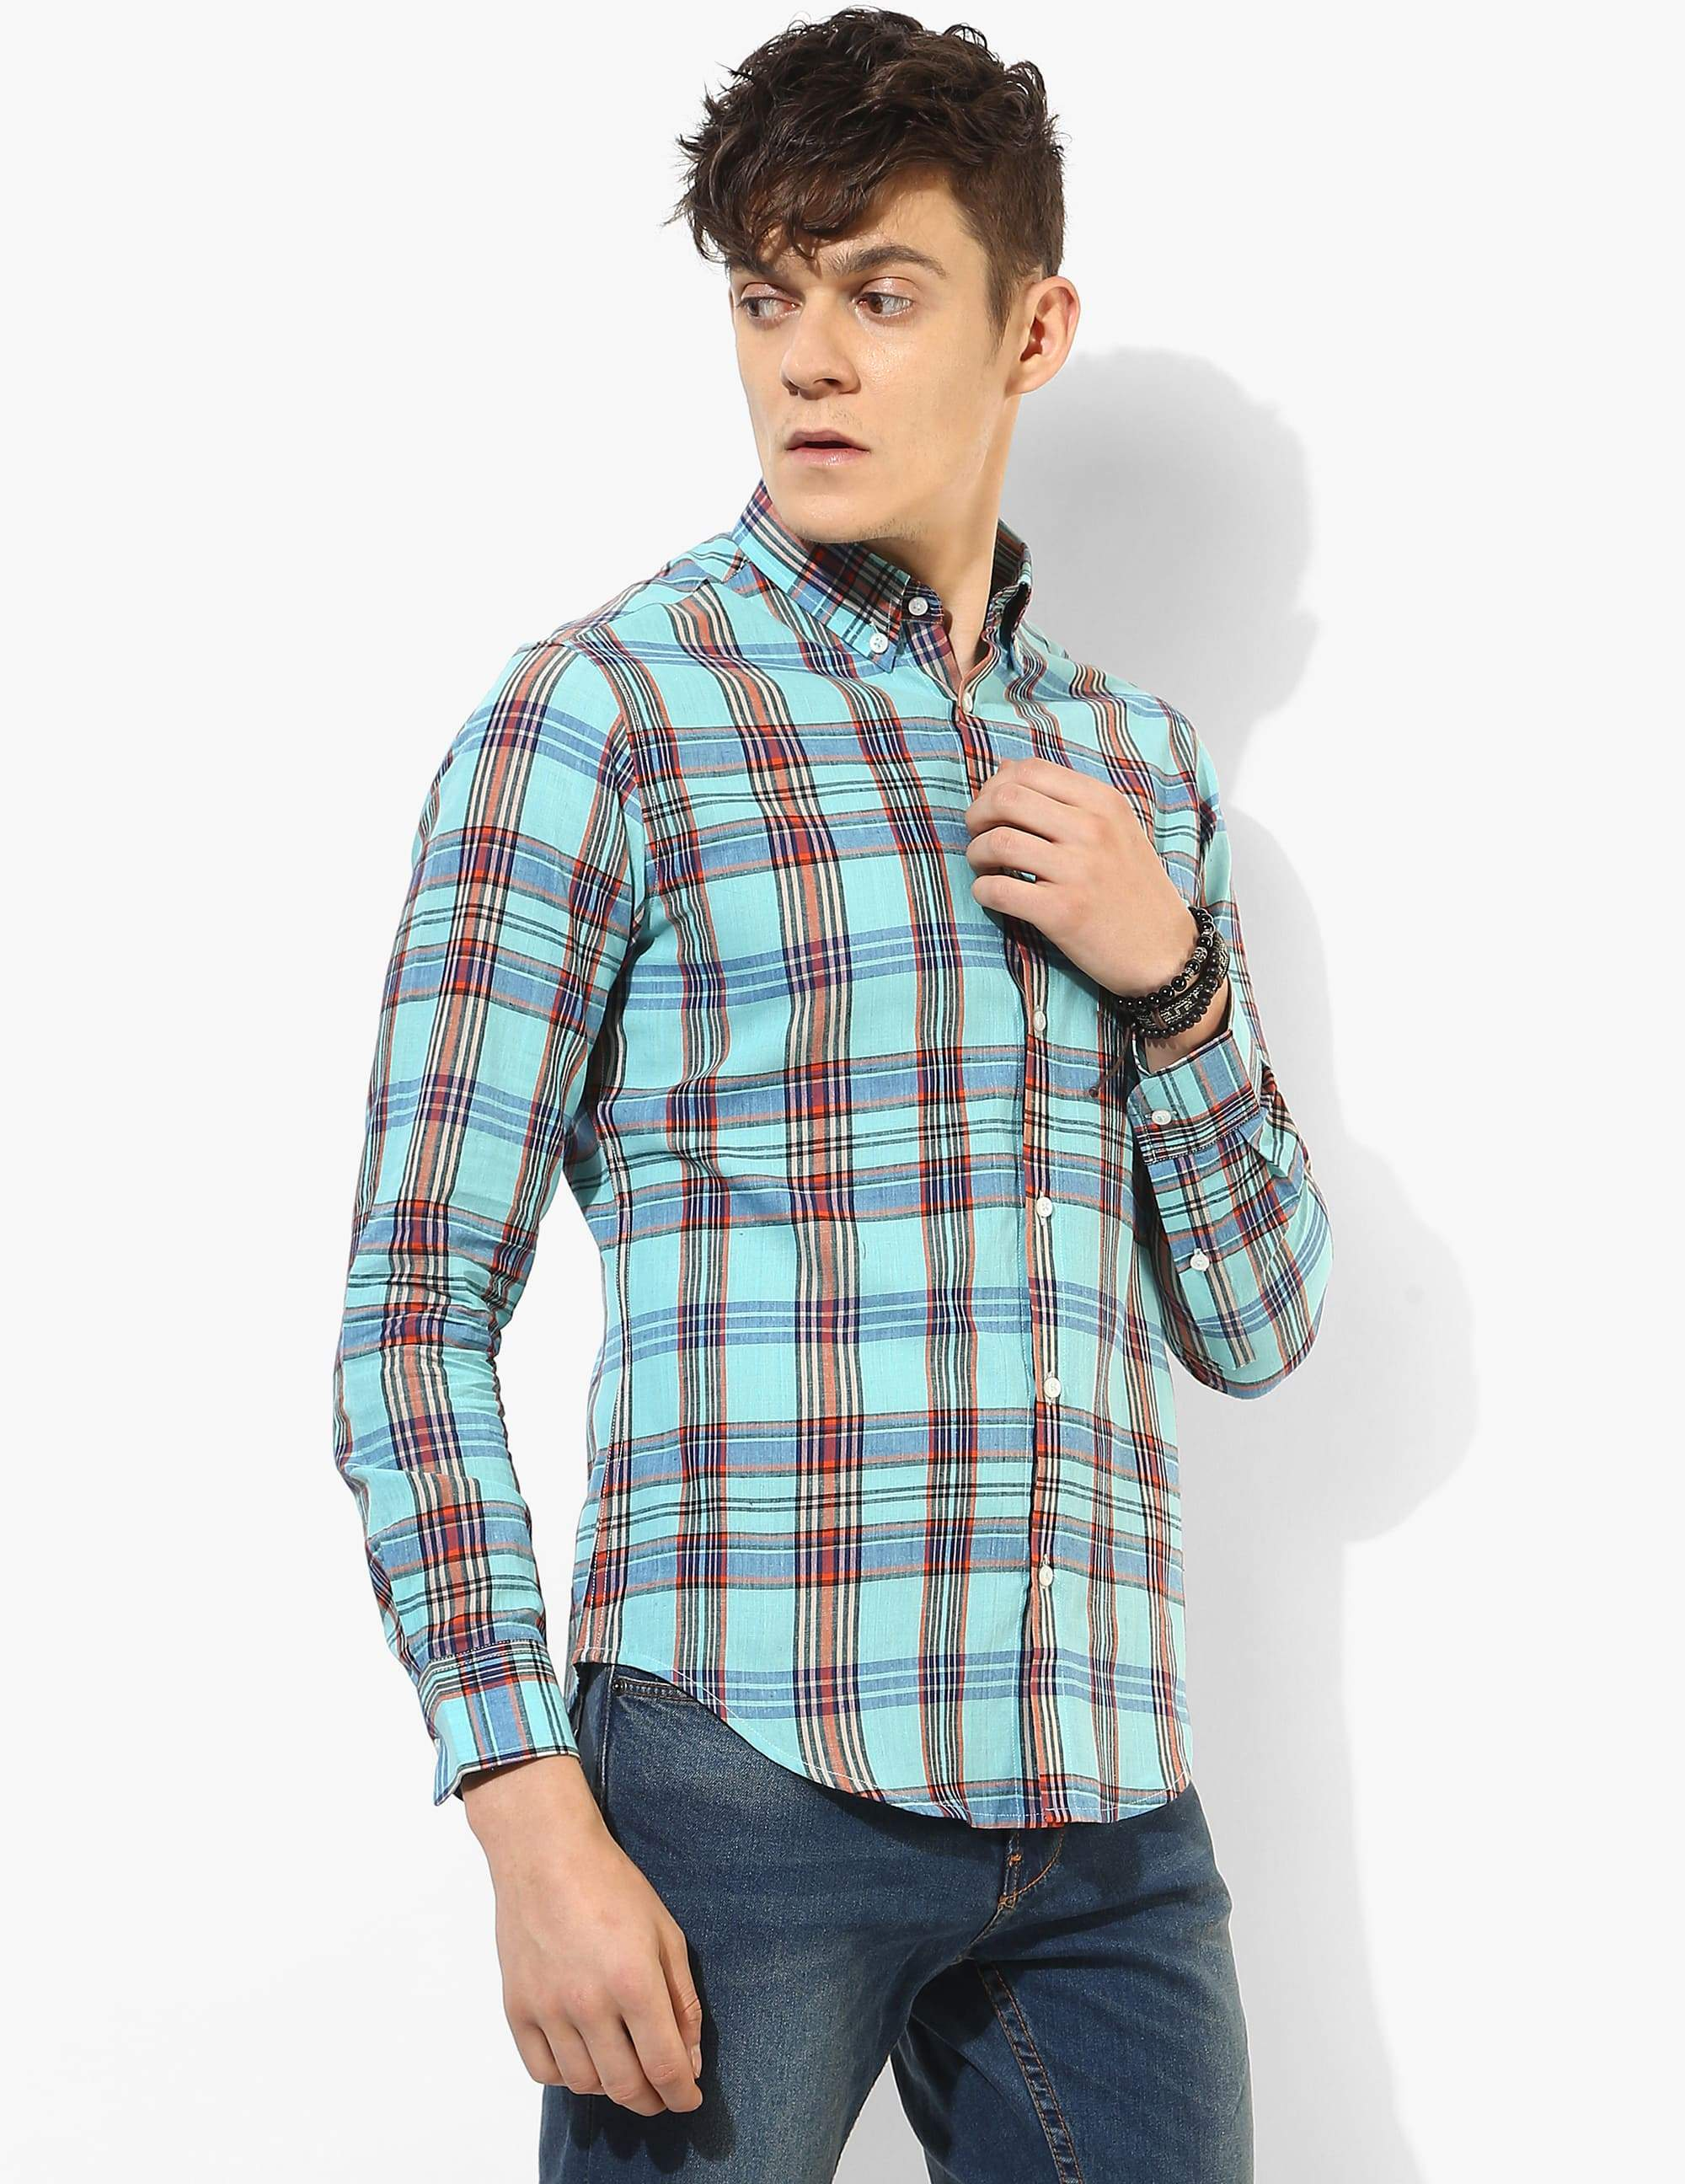 Shredded Blue Madras Shirt